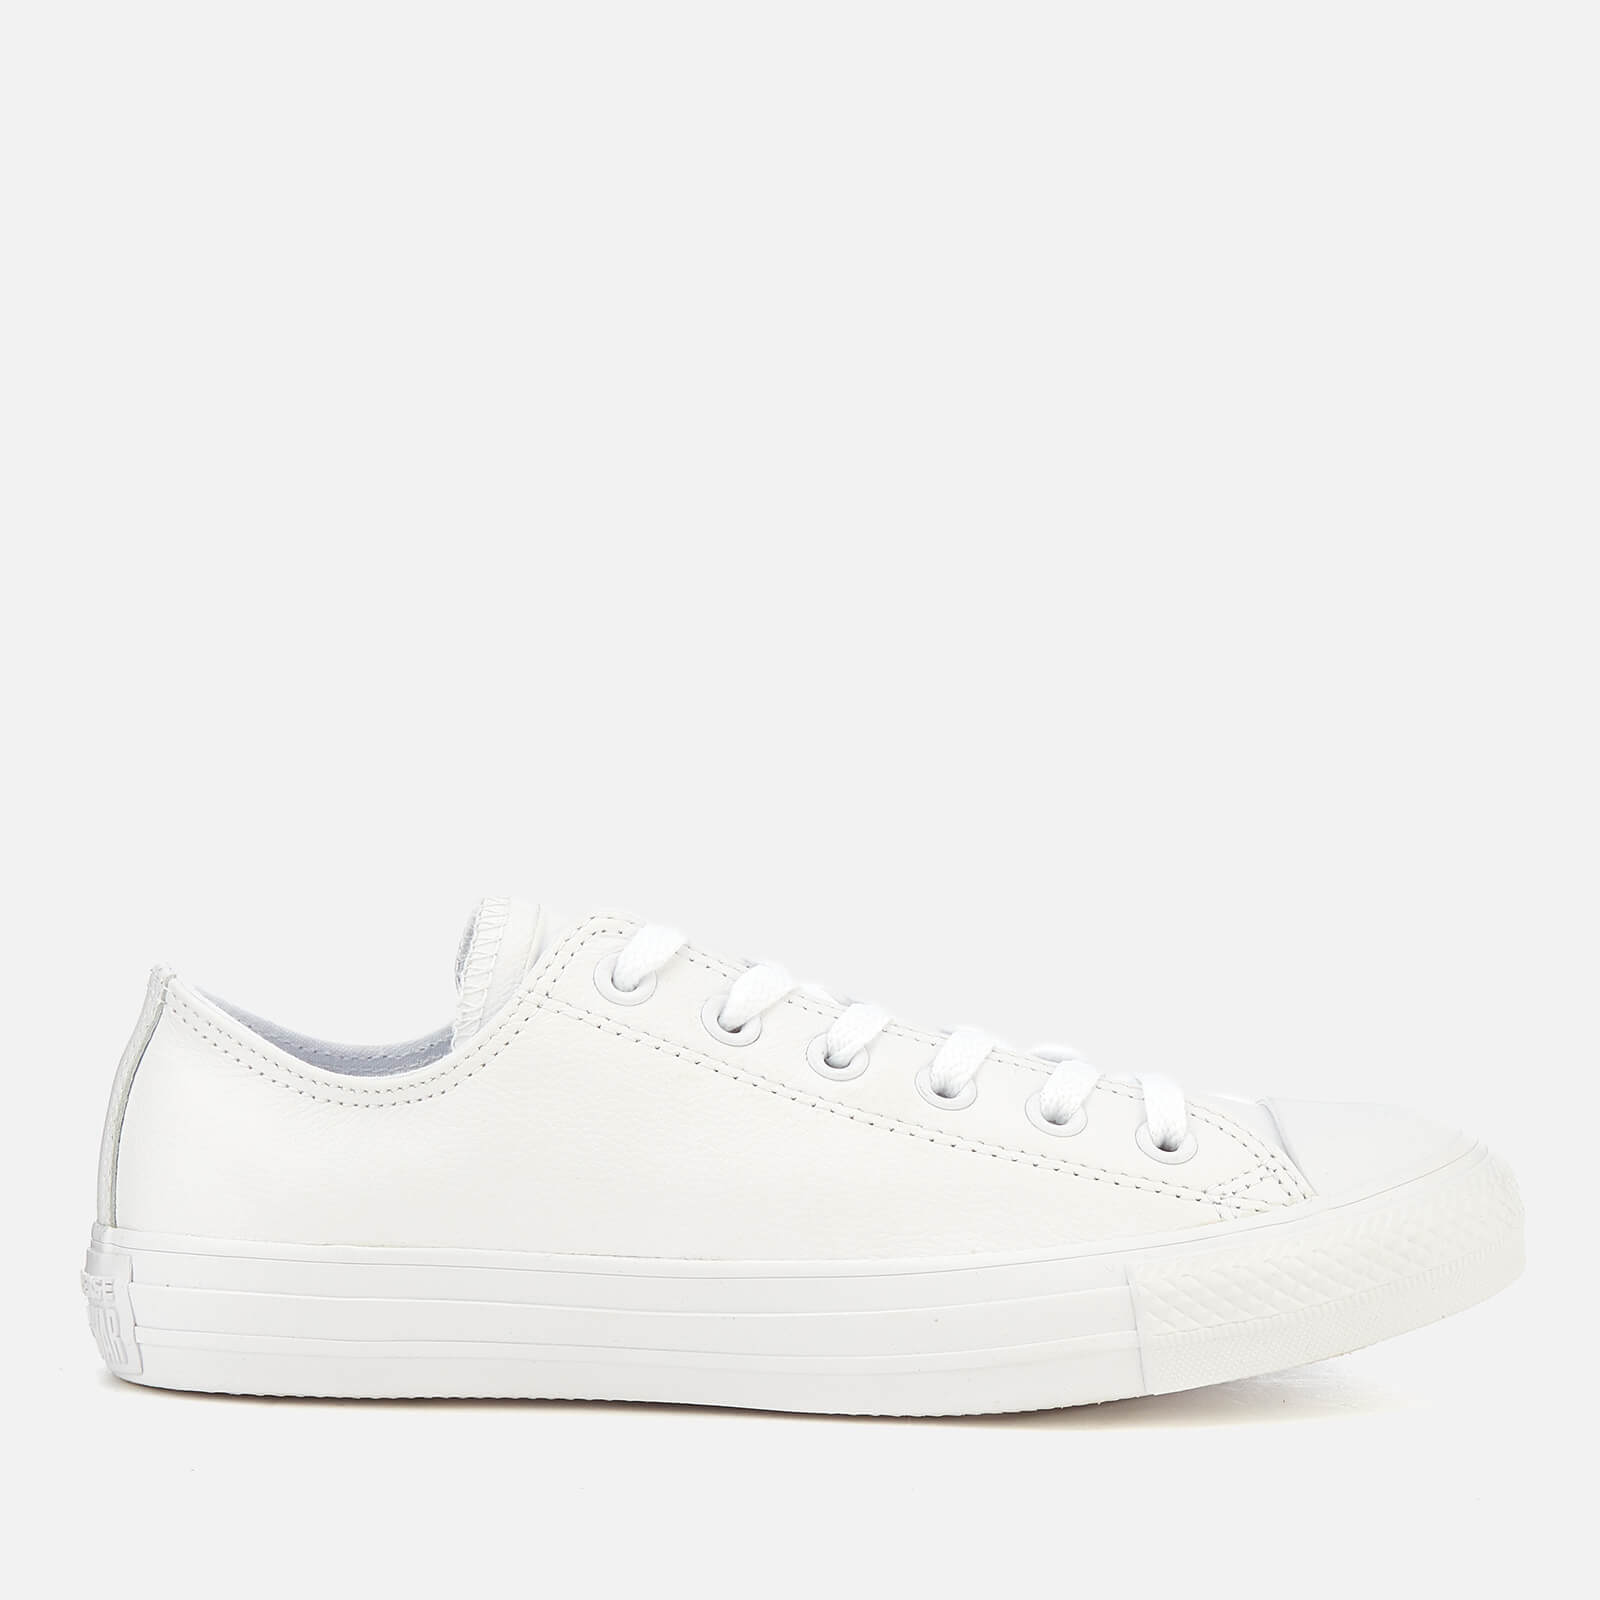 f3acdc9a0f43 Converse Chuck Taylor All Star Ox Leather Trainers - White ...